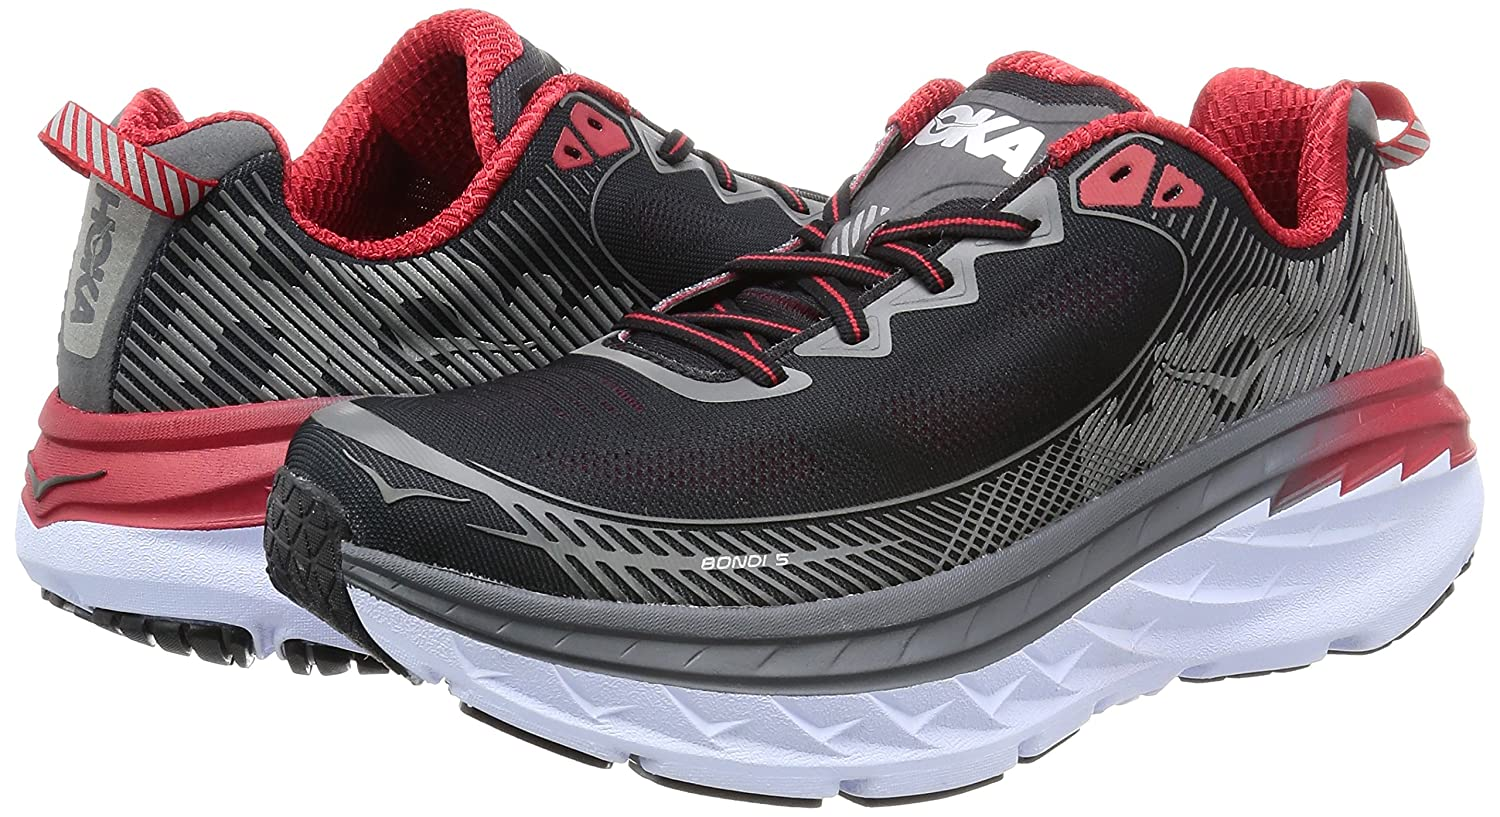 HOKA ONE ONE M Bondi 5 Running Shoe